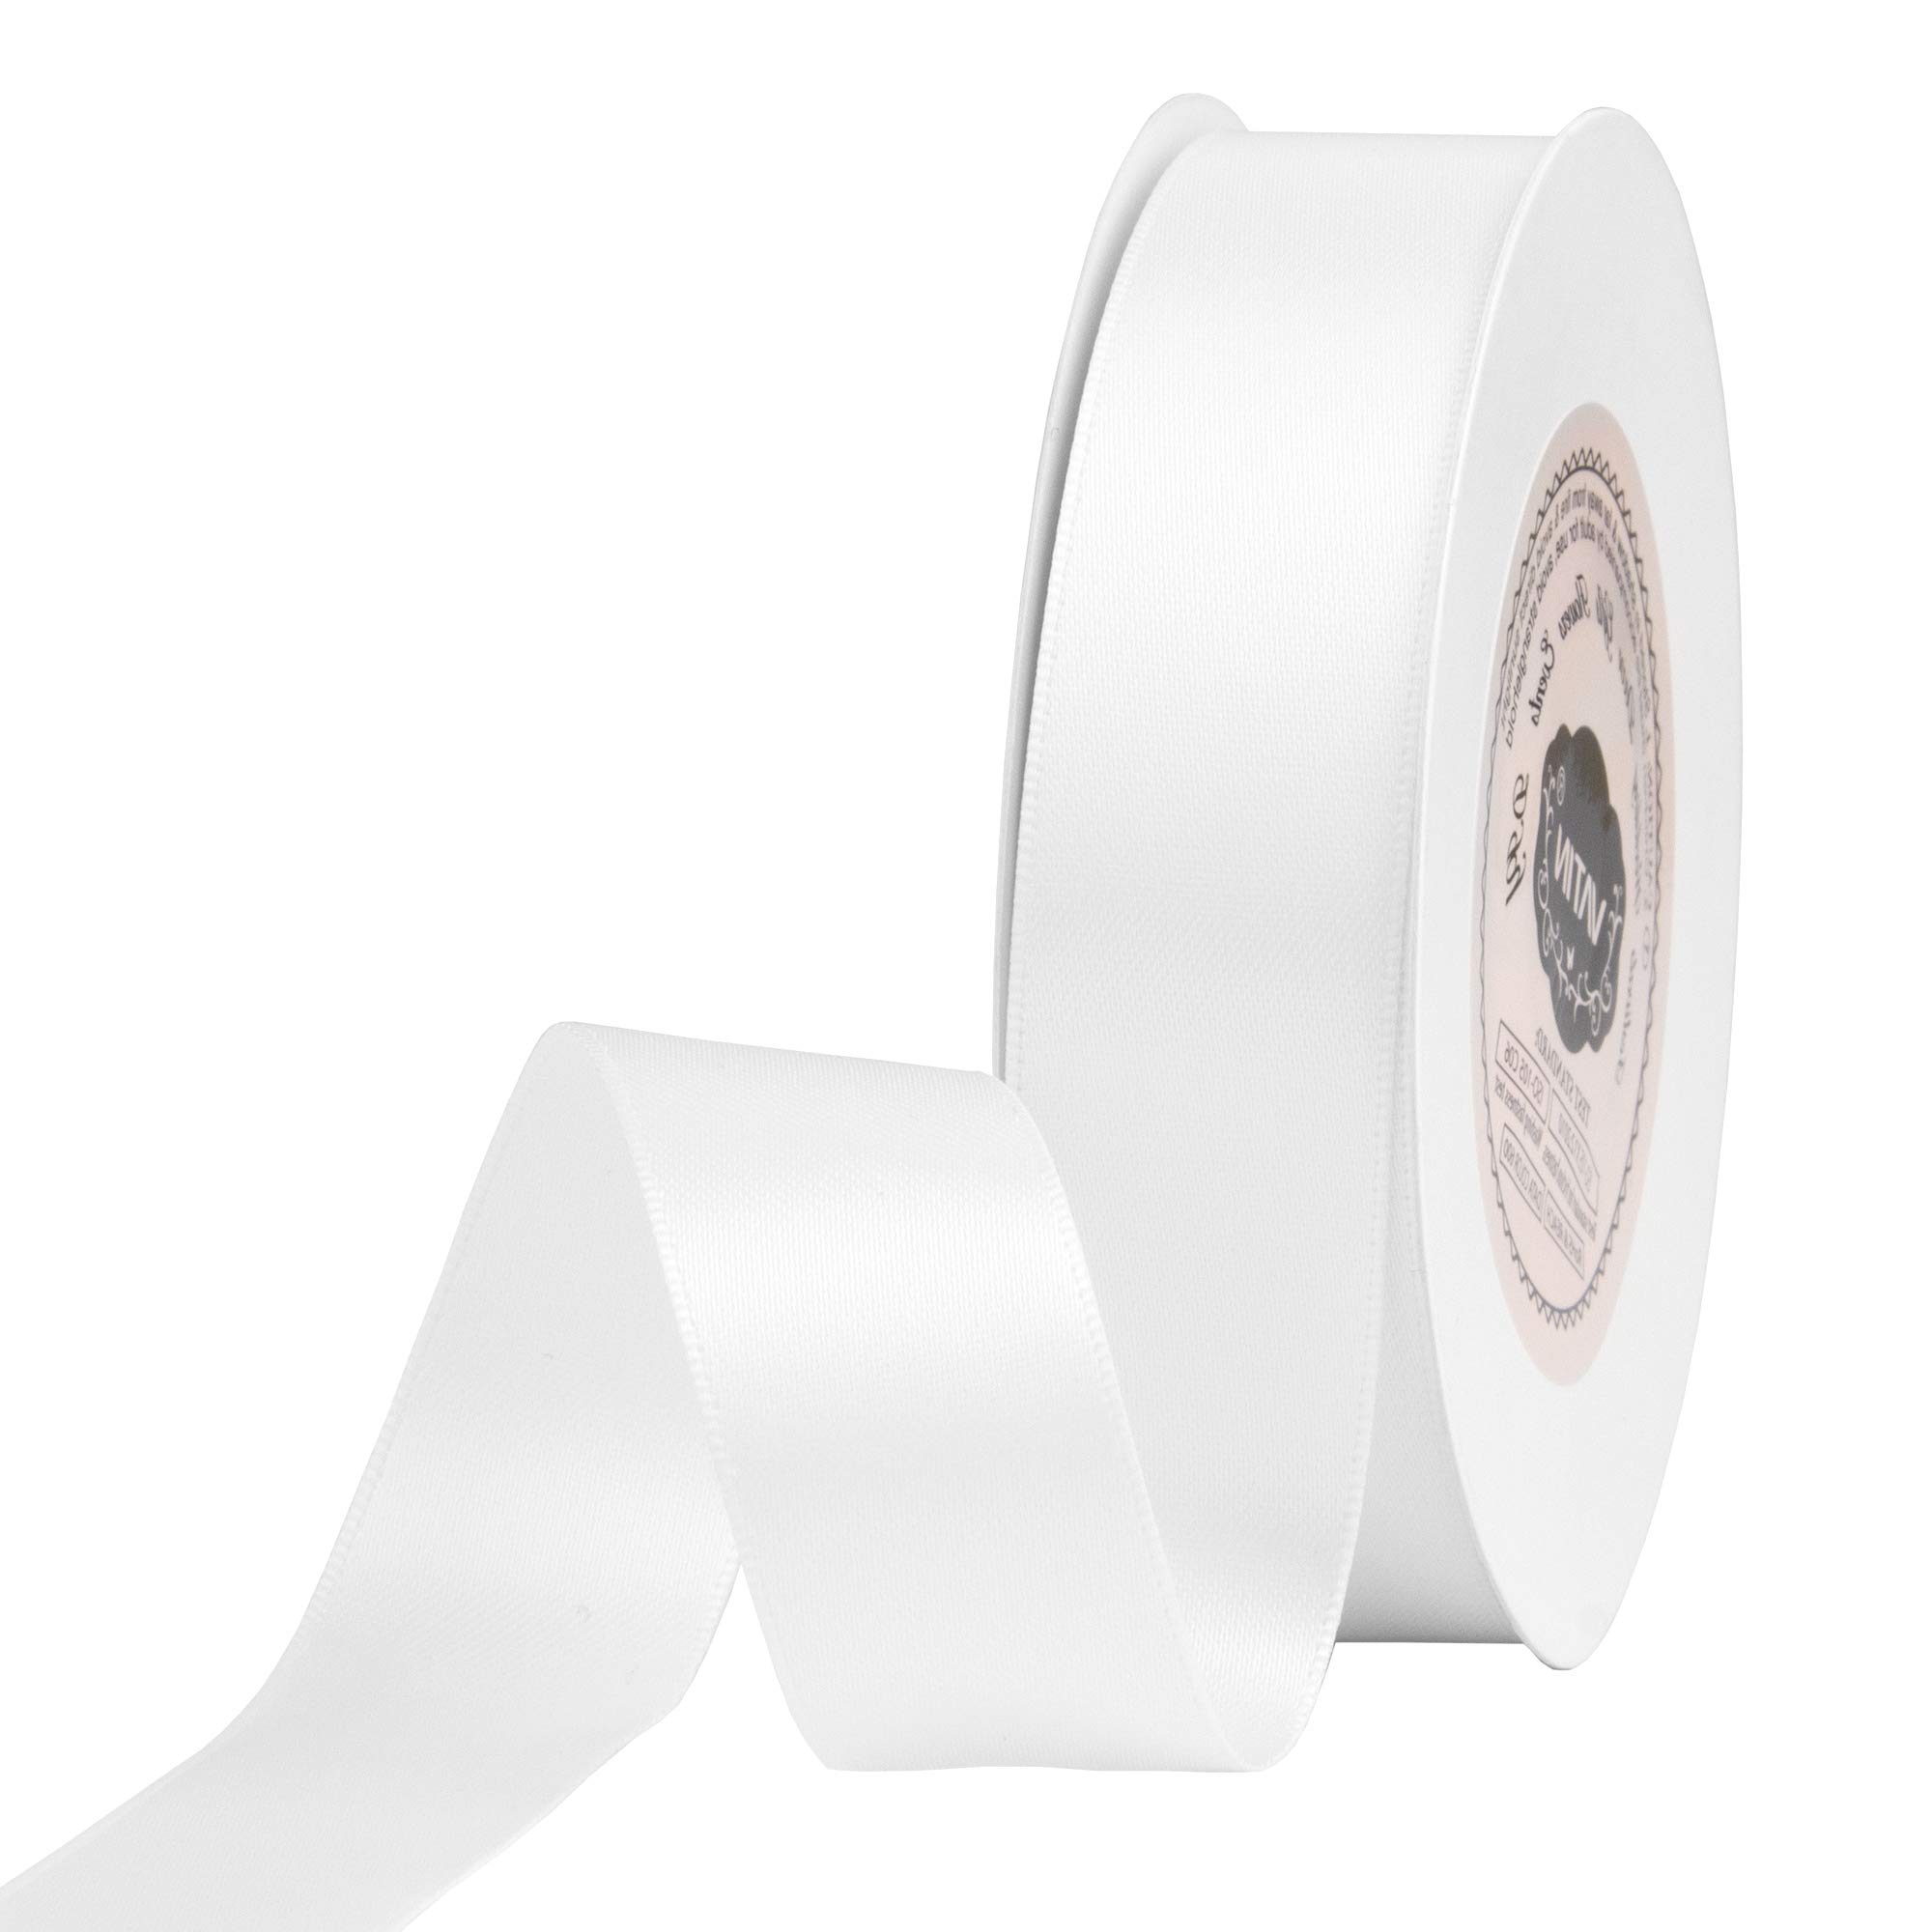 VATIN 7/8 inch Double Faced Polyester Satin Ribbon White - 25 Yard Spool, Perfect for Wedding Decor, Wreath, Baby Shower,Gift Package Wrapping and Other Projects